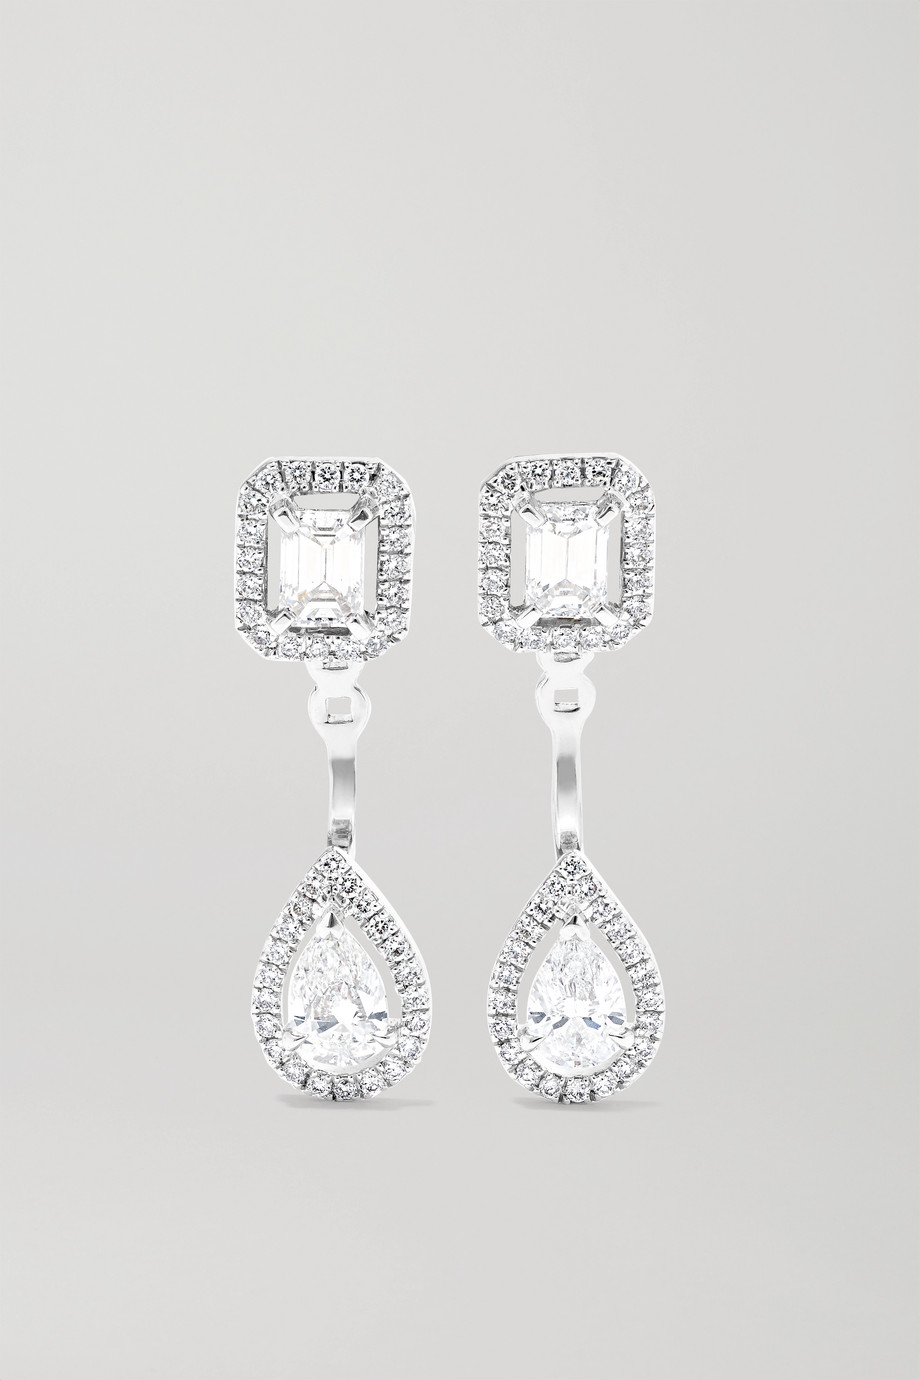 Messika Boucles d'oreilles en or blanc 18 carats et diamants My Twin Toi & Moi